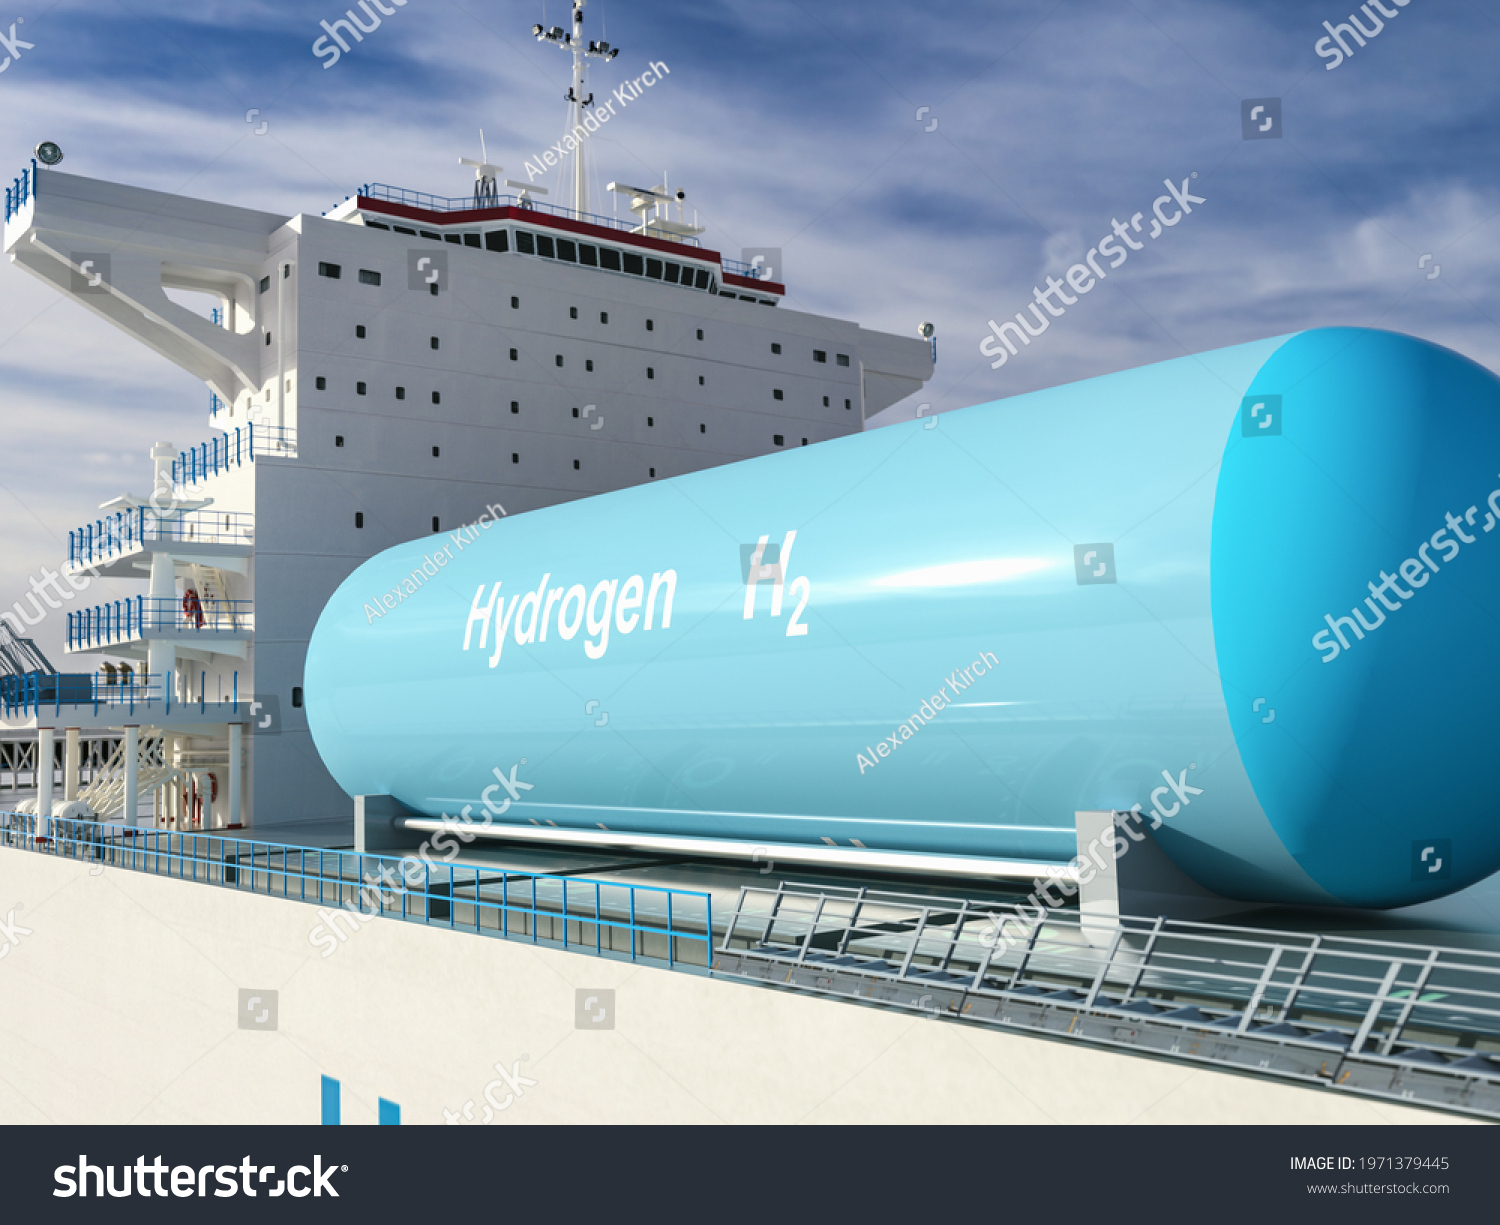 Liqiud Hydrogen renewable energy in vessel - LH2 hydrogen gas for clean sea transportation on container ship with composite cryotank for cryogenic gases. 3d rendering. #1971379445